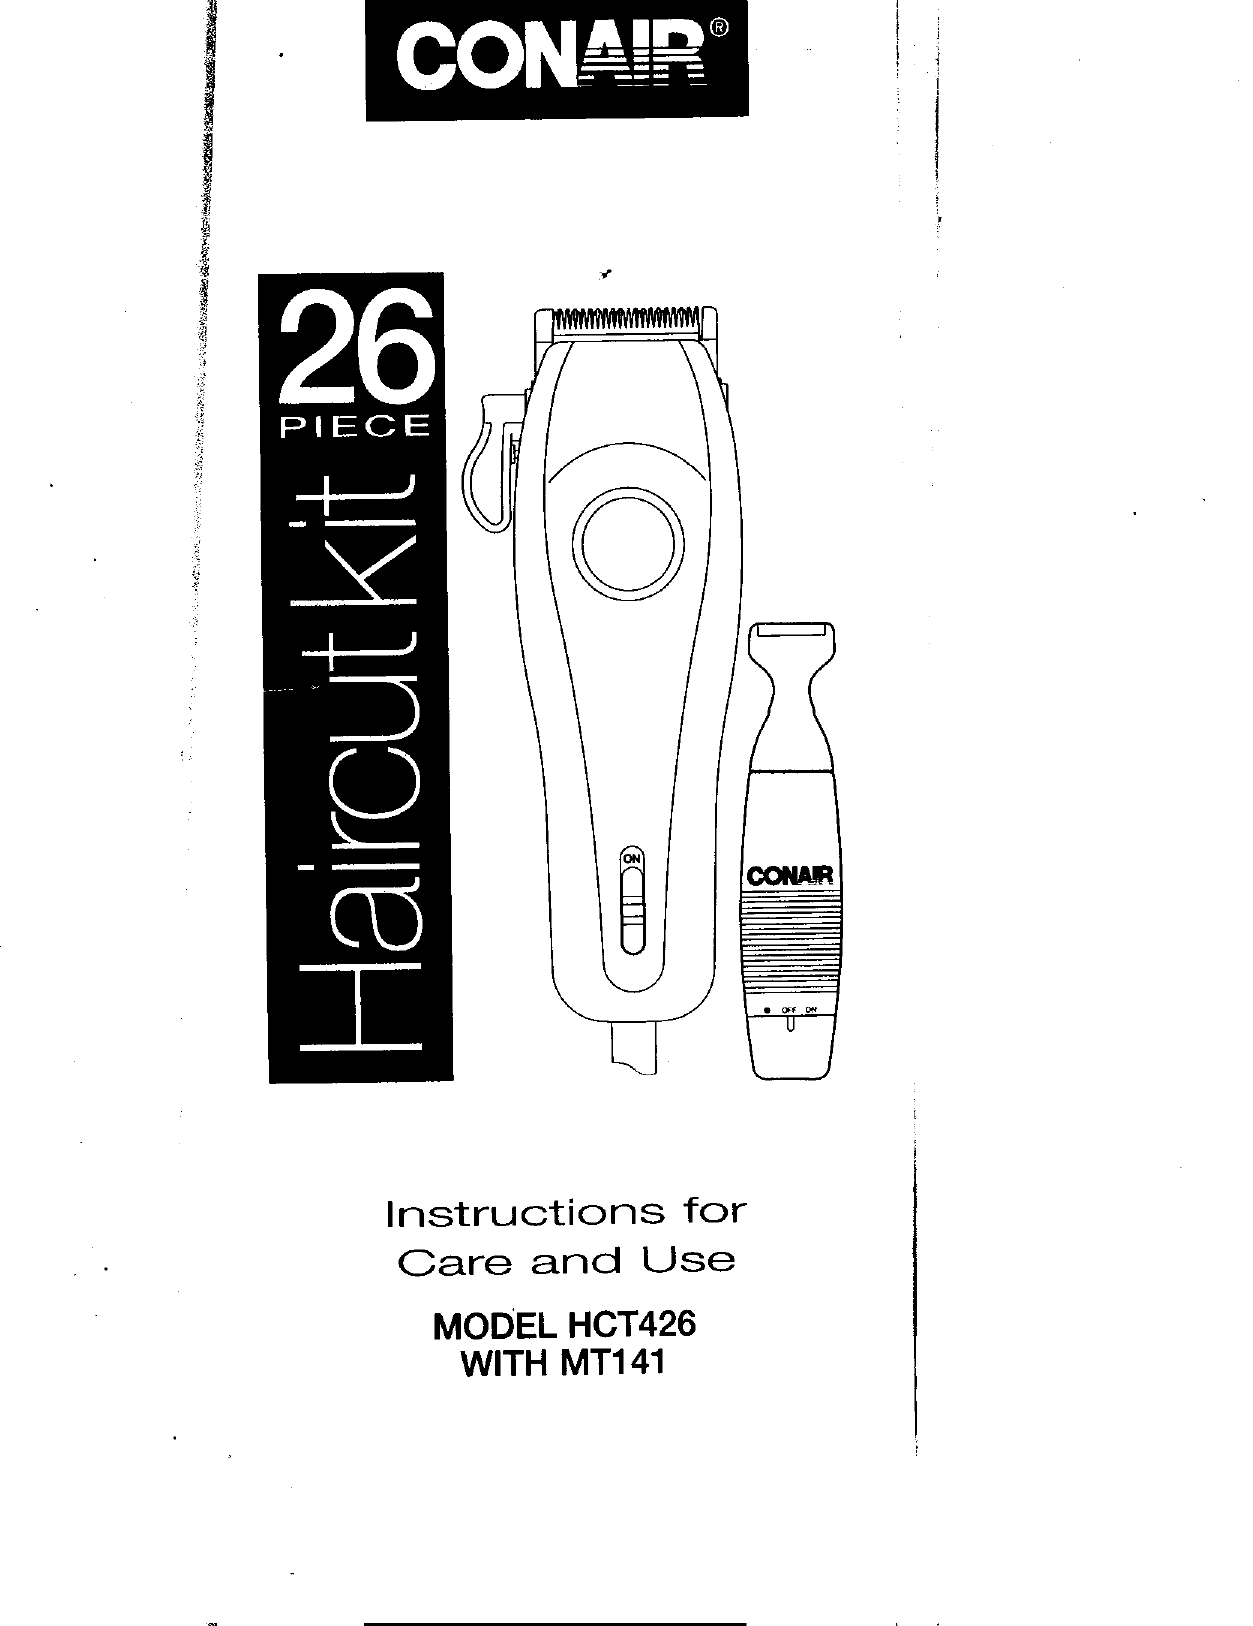 Conair HCT426 26-Piece Haircut Kit Instruction manual